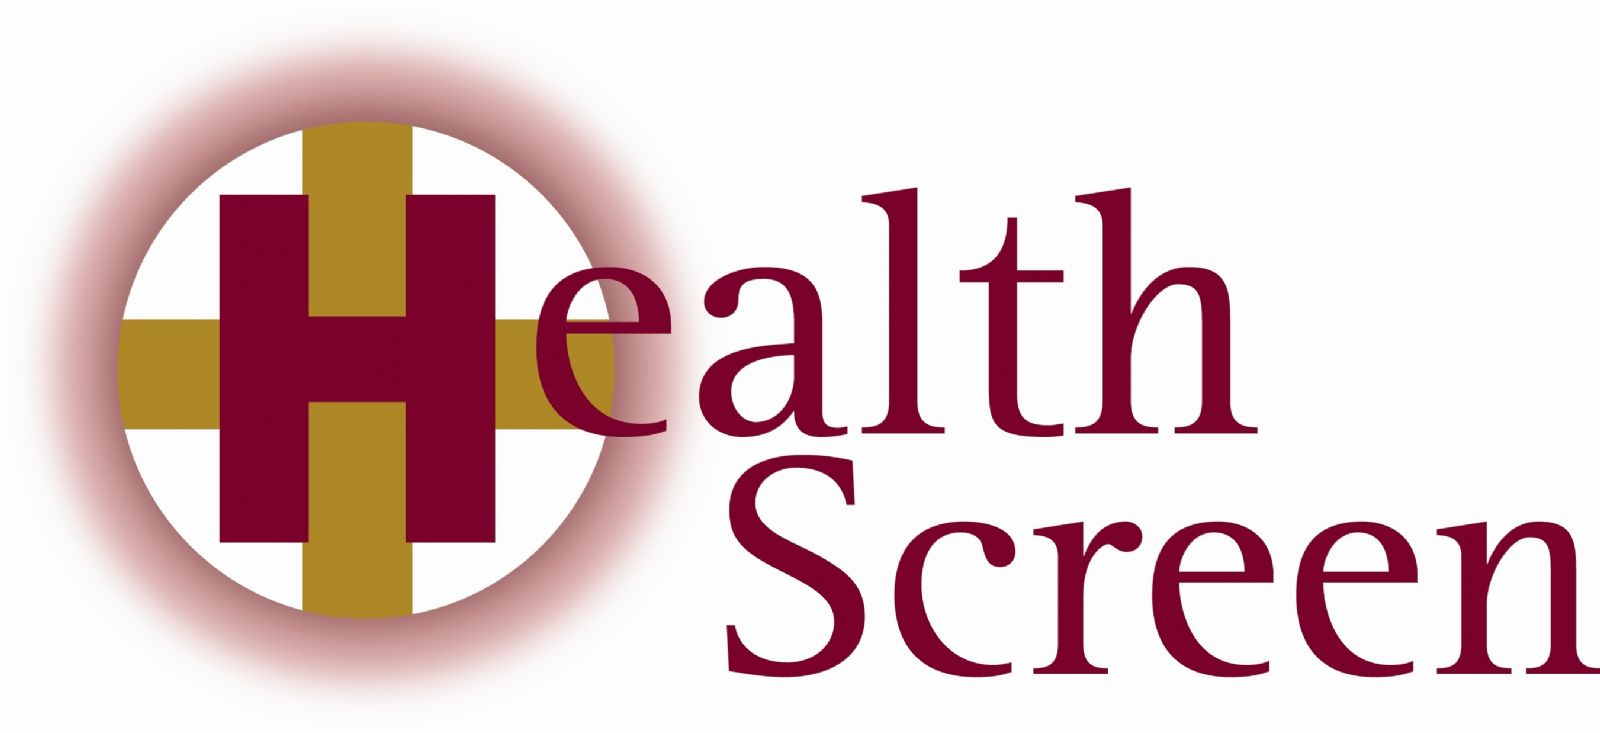 Why choose Healthscreen Uk Ltd for your Occupational Health Surveillance? - Header Image